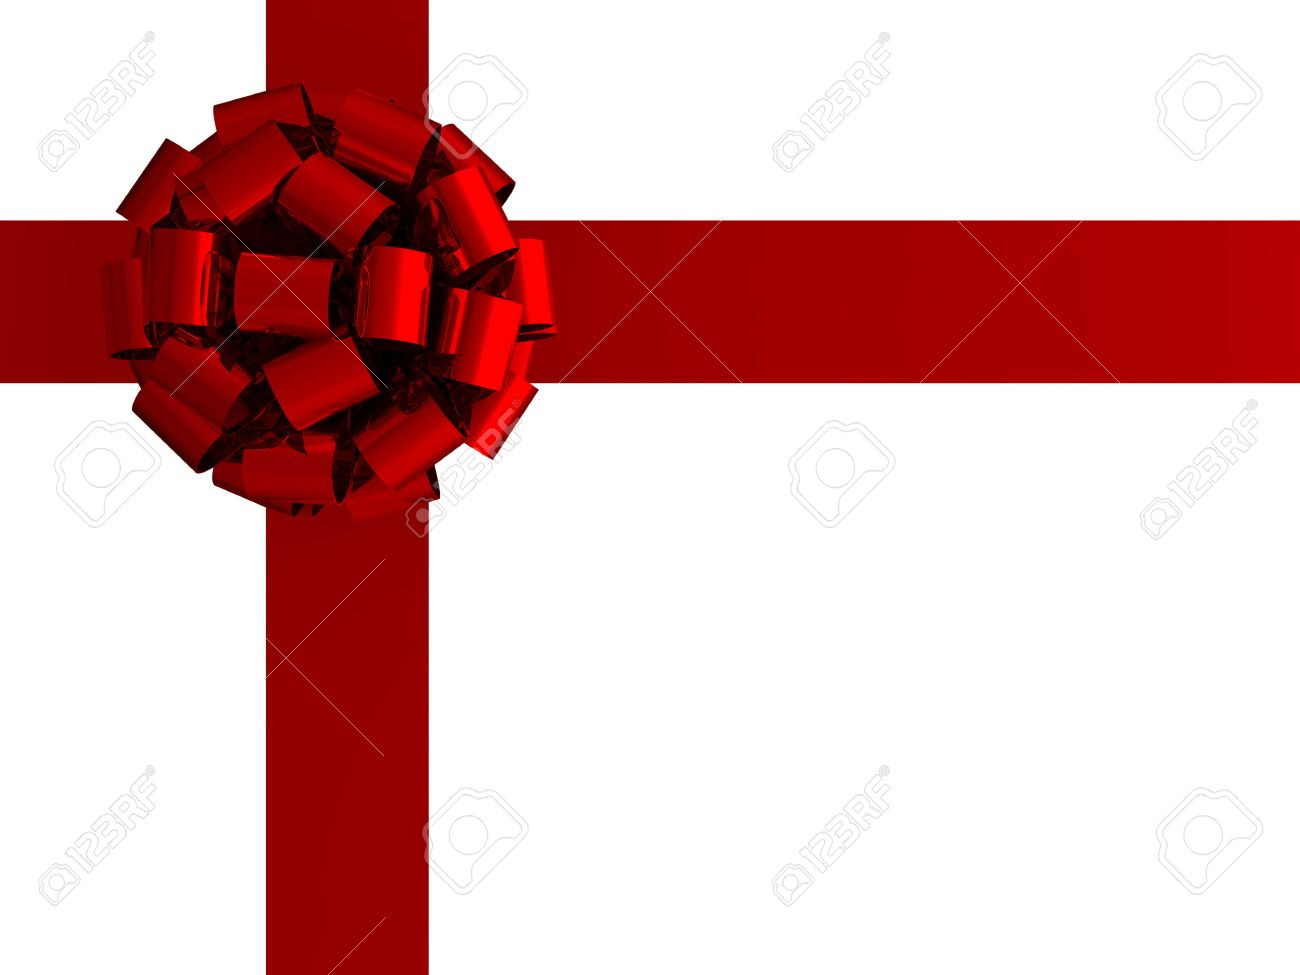 3d illustration of a gift bow and ribbon Stock Photo - 6261459